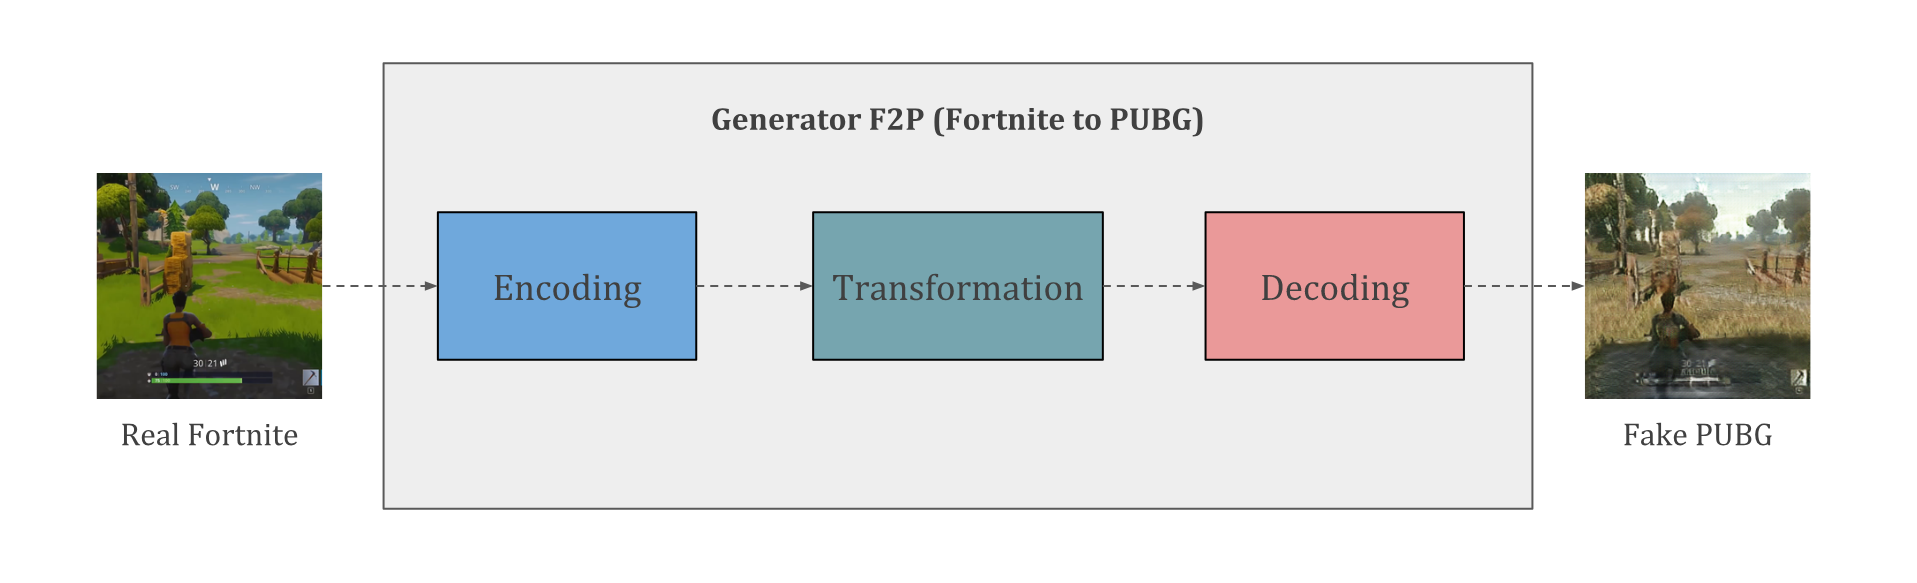 Overview of Generator F2P shown in the previous figure.